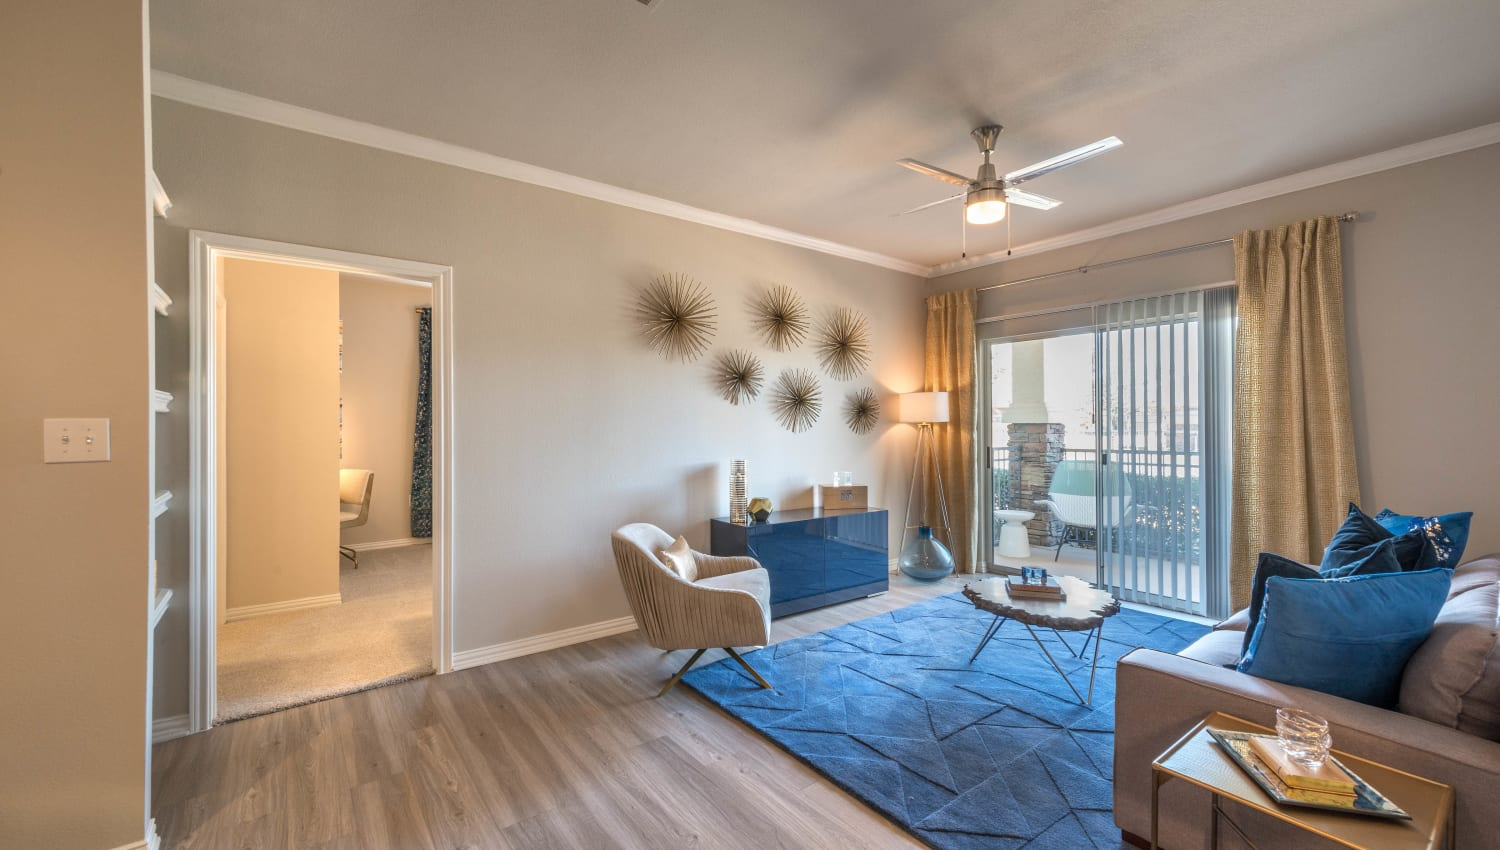 Model home's living area with hardwood flooring and a ceiling fan at Olympus Stone Glen in Keller, Texas